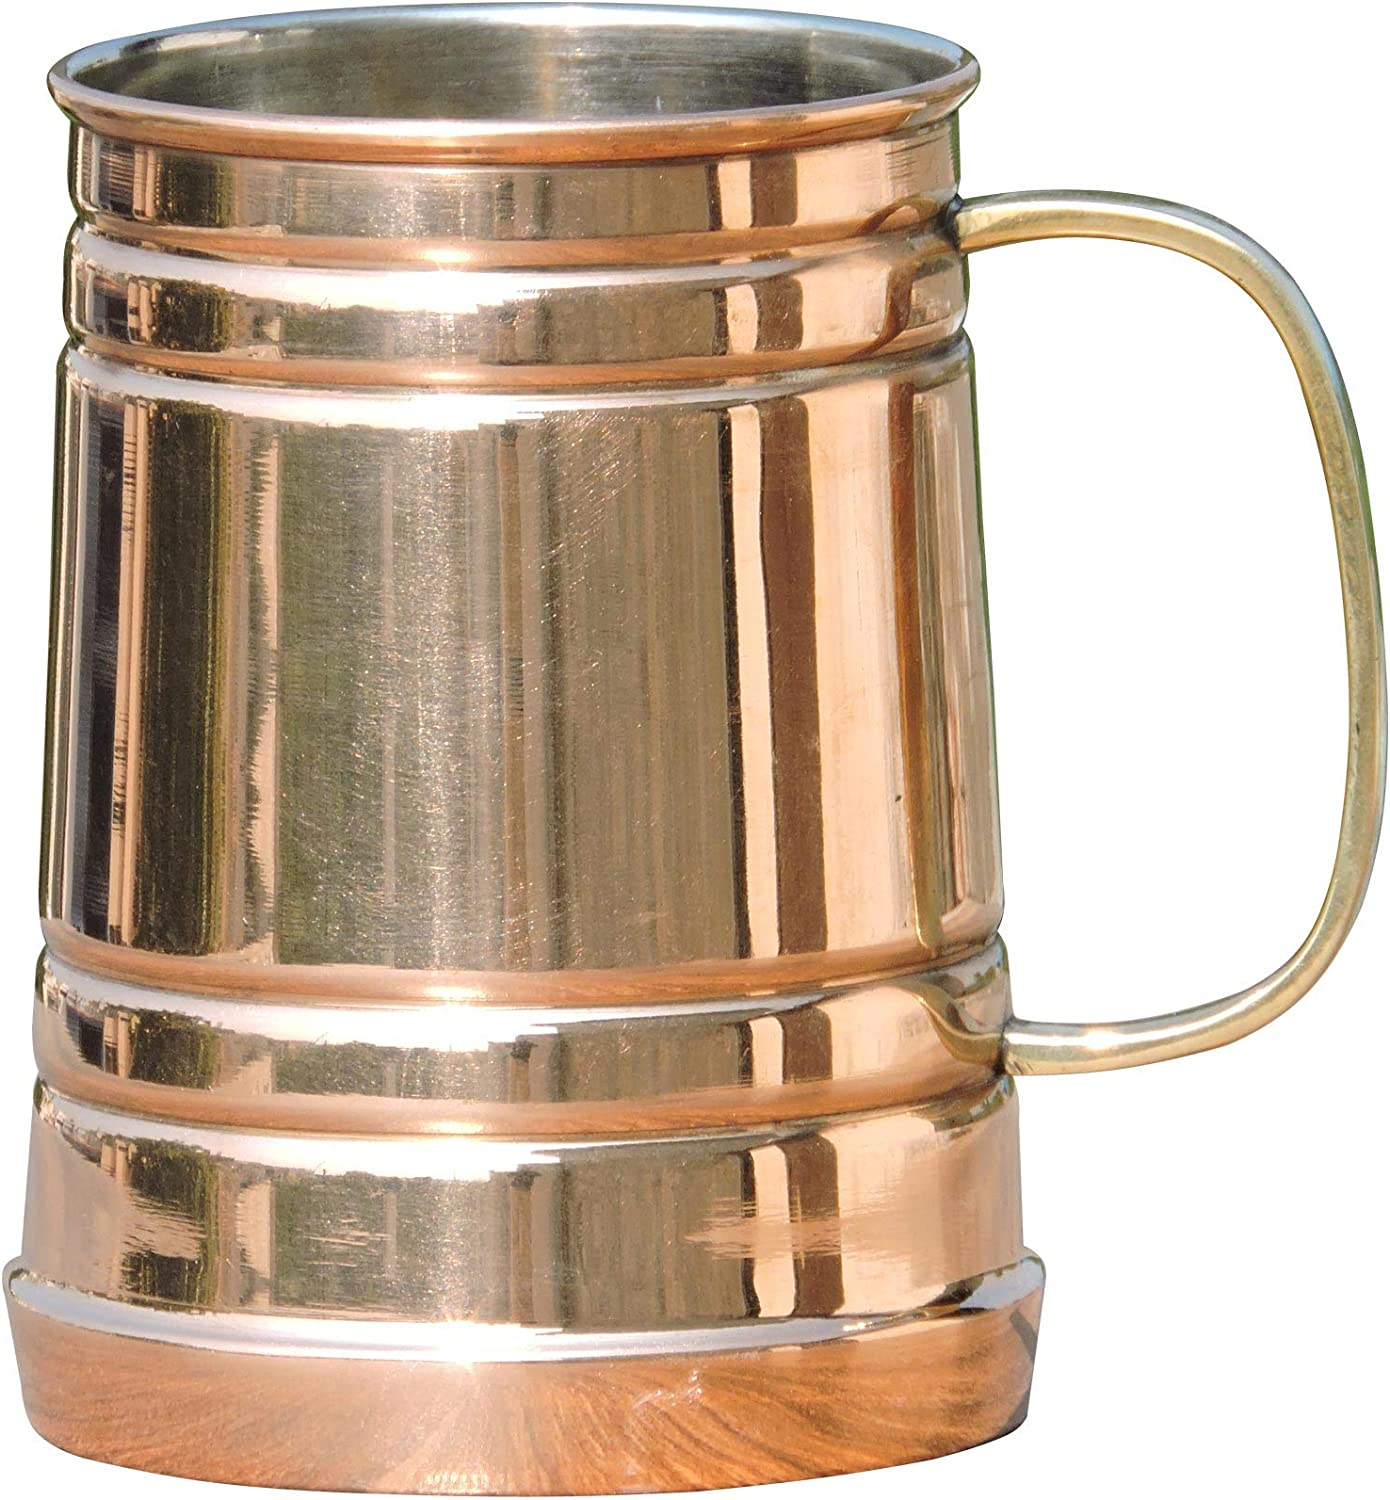 Ancient Impex - Steel Mule Moscow Mug Max 75% Animer and price revision OFF